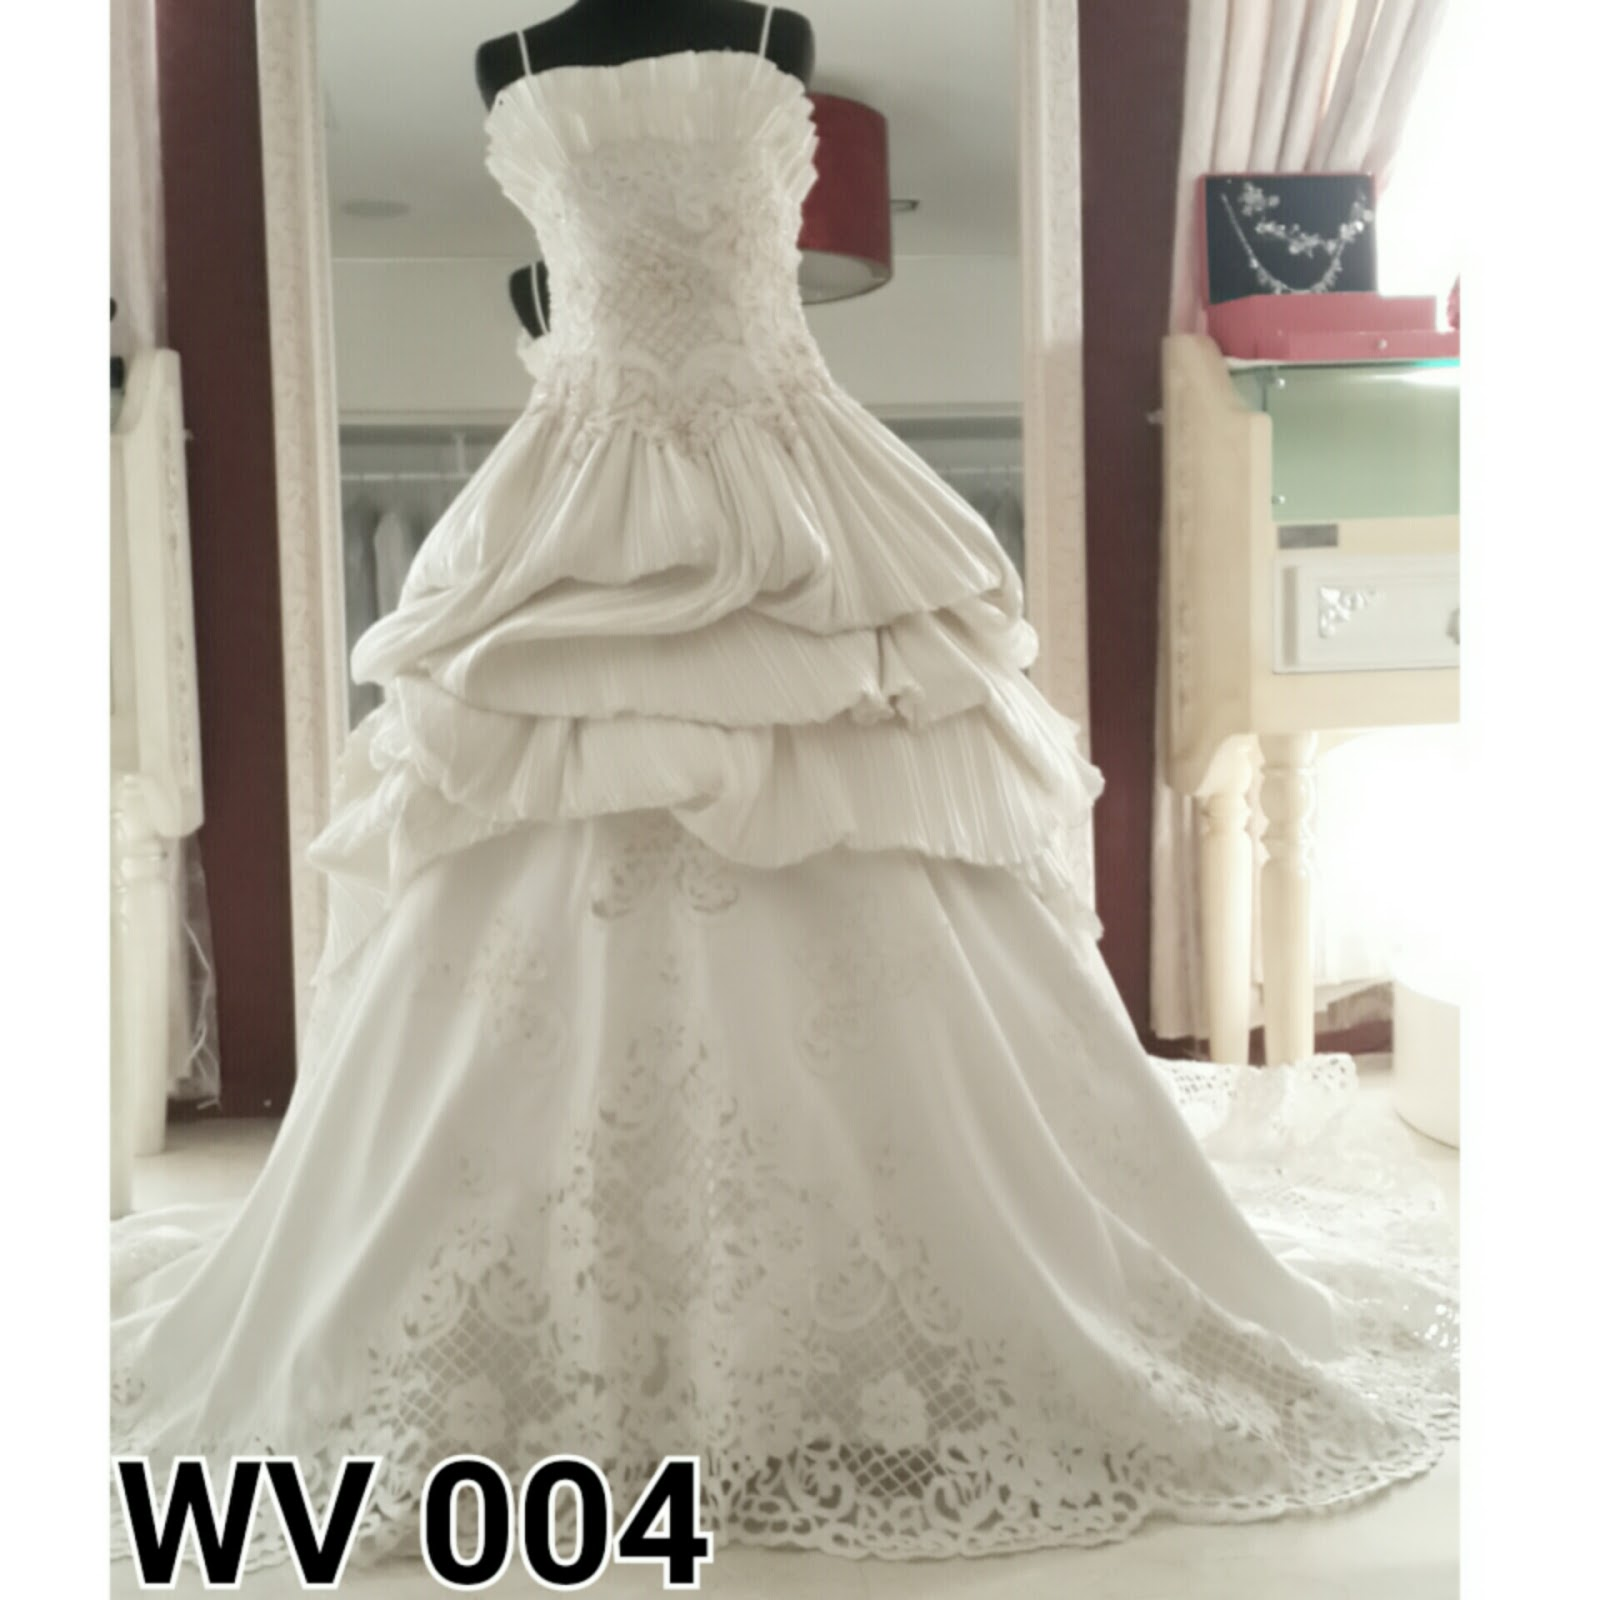 JUAL WEDDING GOWN IMPORT HIGH QUALITY PO WEDDING GOWN